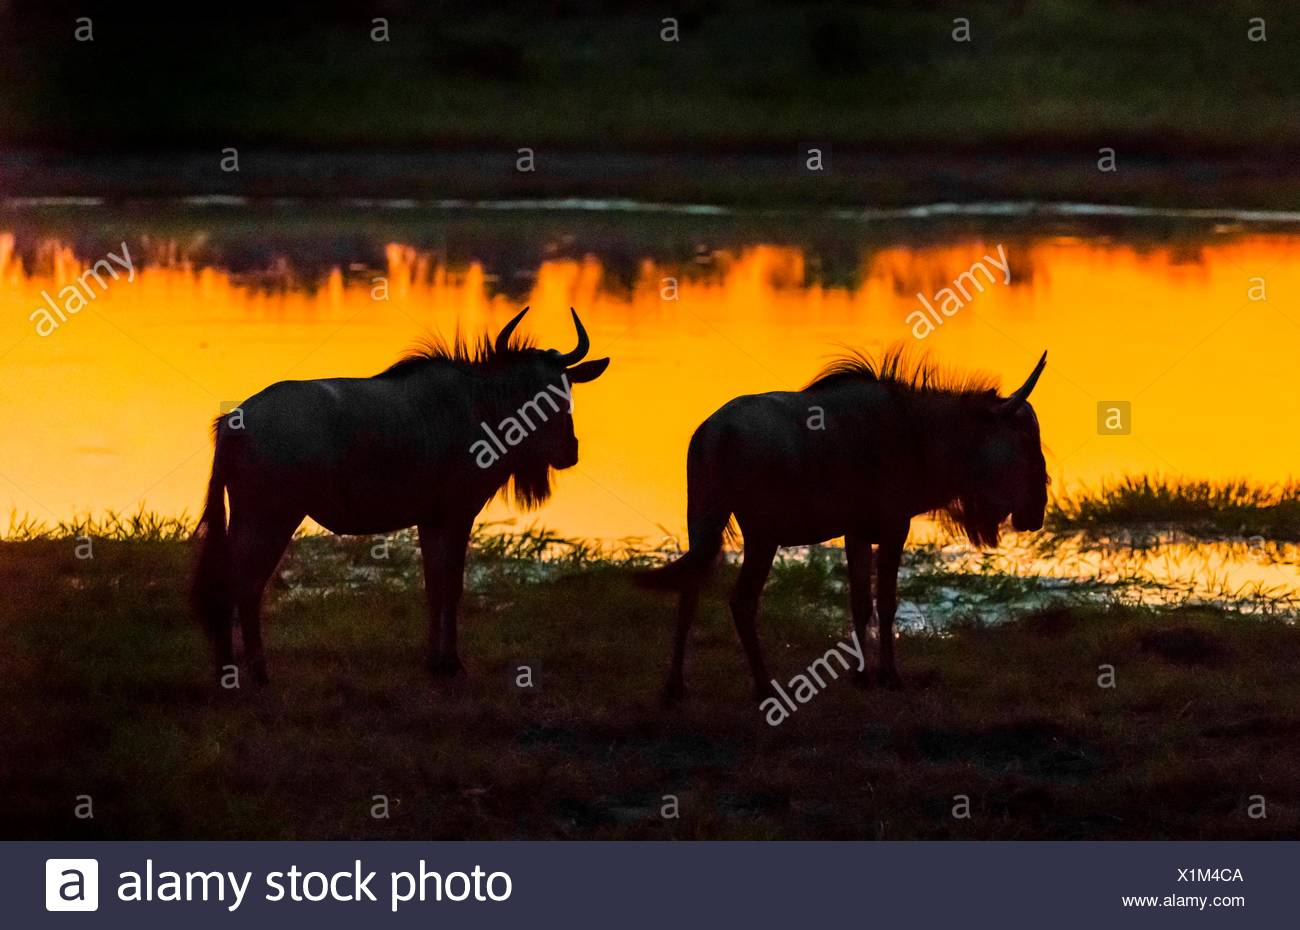 Blue wildebeest (gnu) after sunset at a watering hole, Kwando Concession, Linyanti Marshes, Botswana. Stock Photo